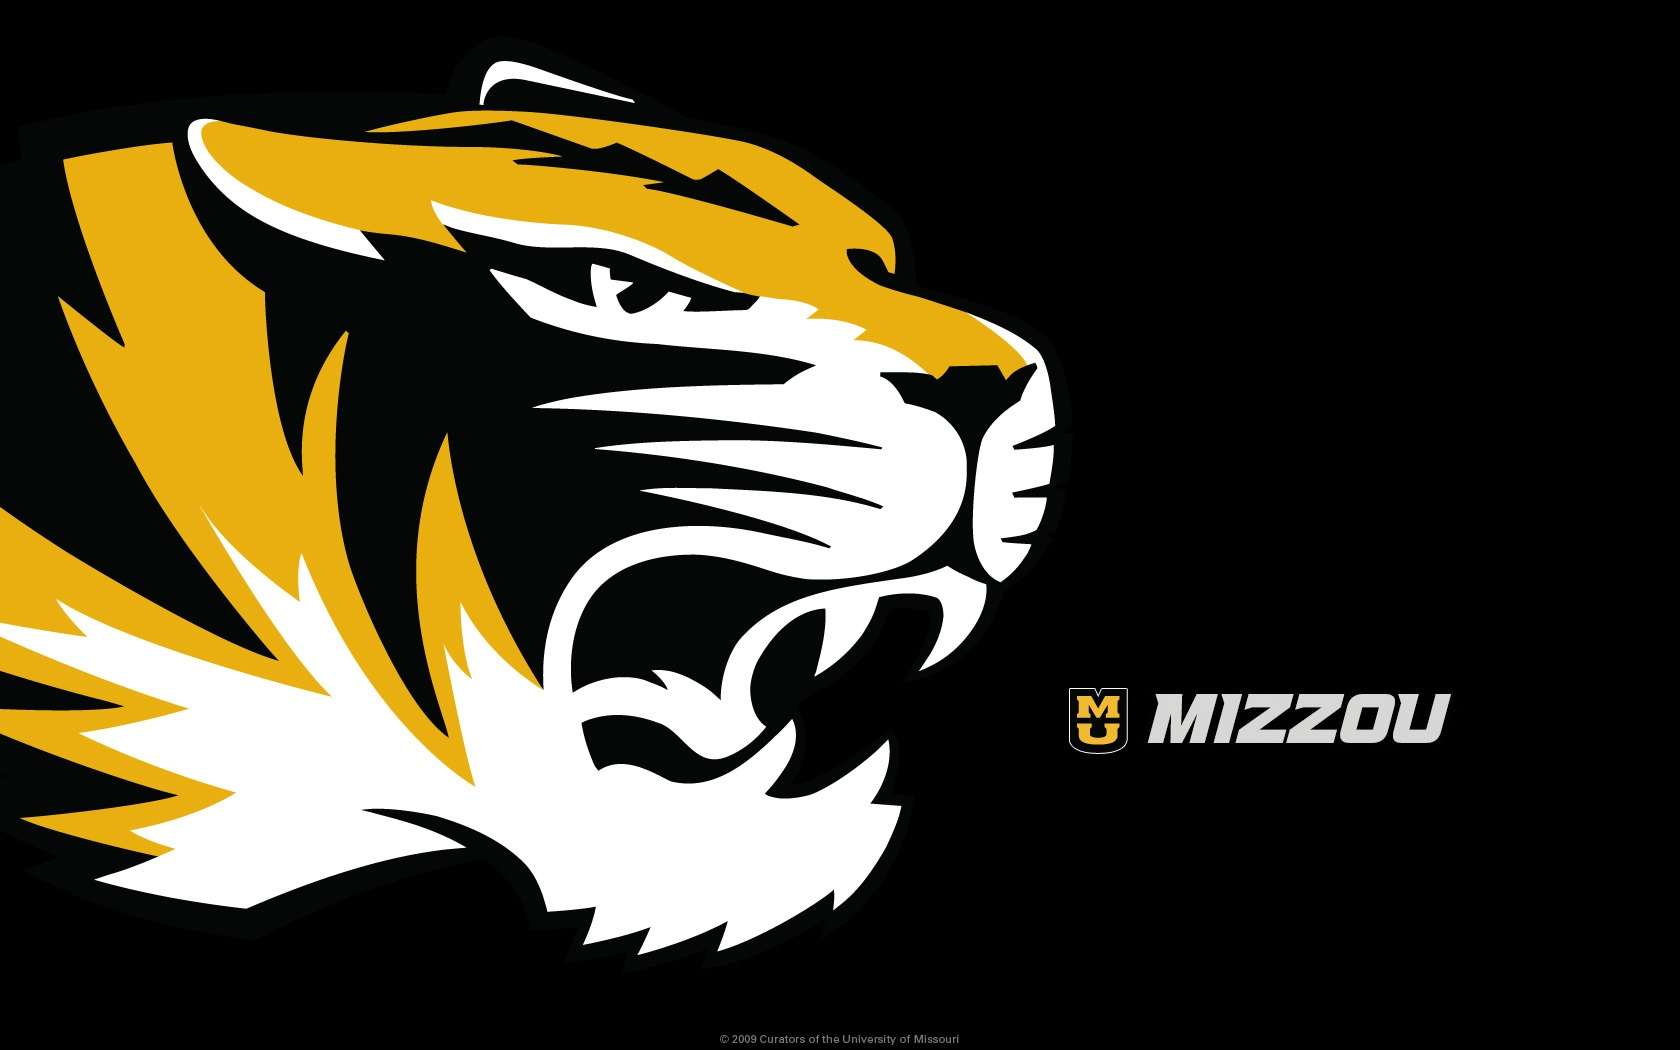 I Updated The Times New Roman Font On This Otherwise   Mizzou 1680x1050